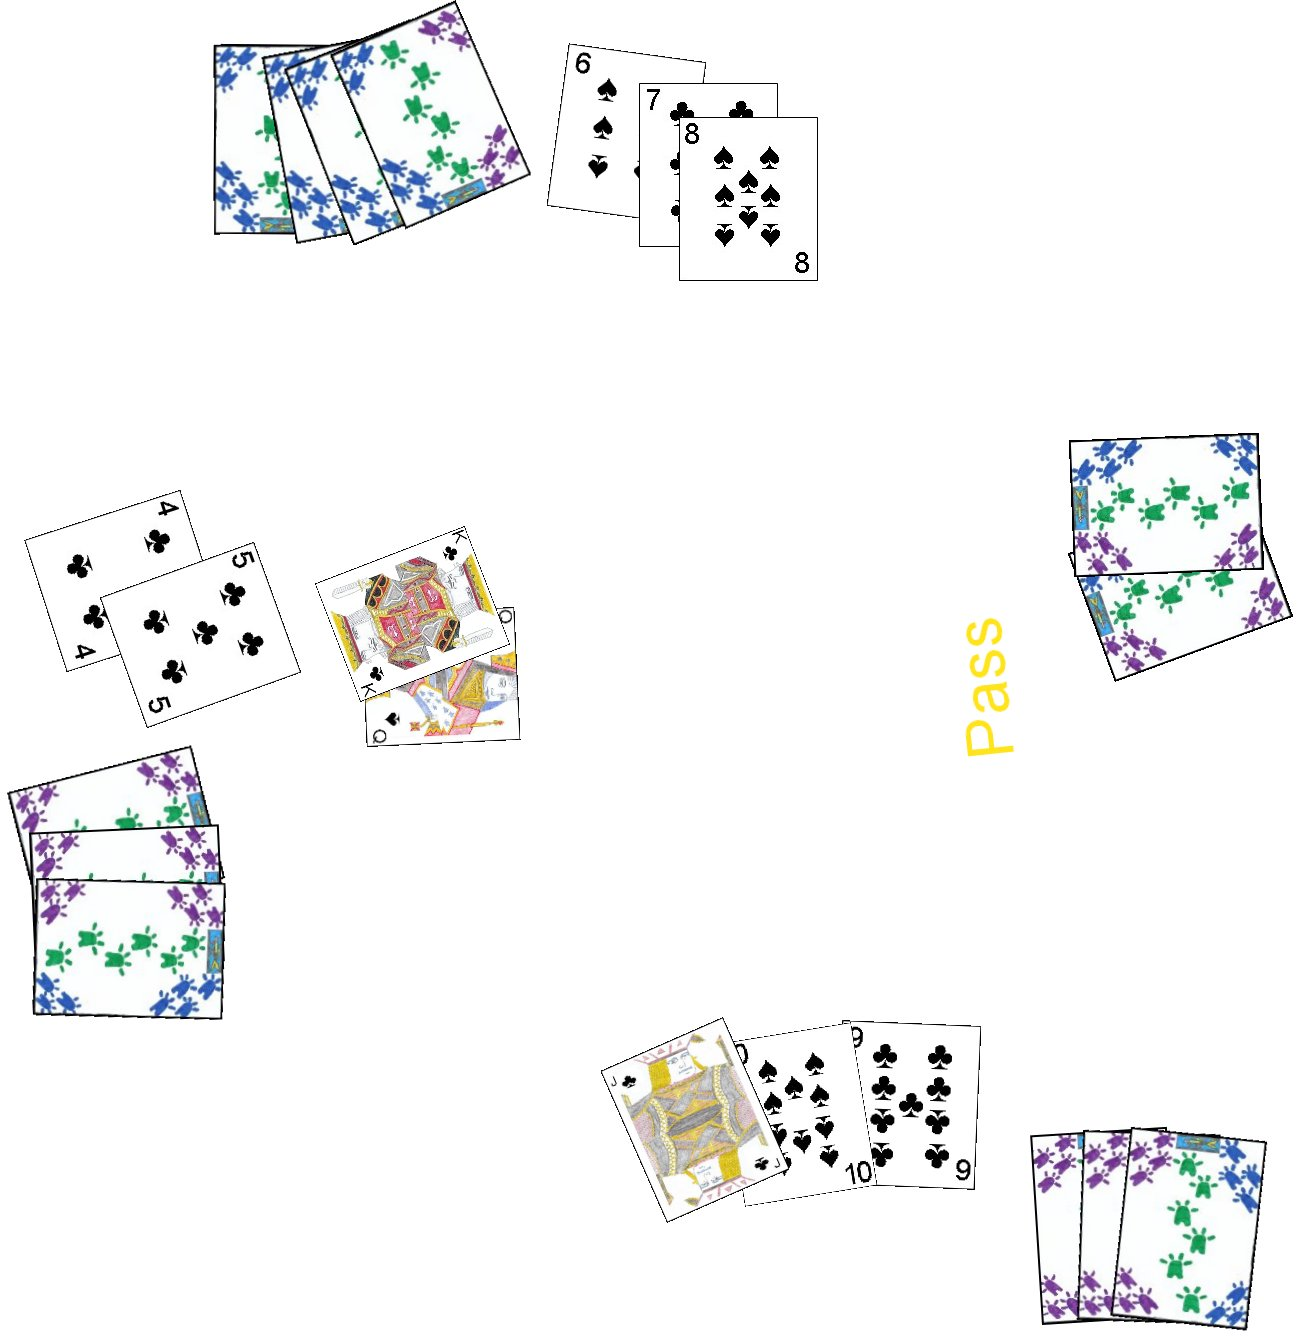 A Sequence being played in the card game Comet